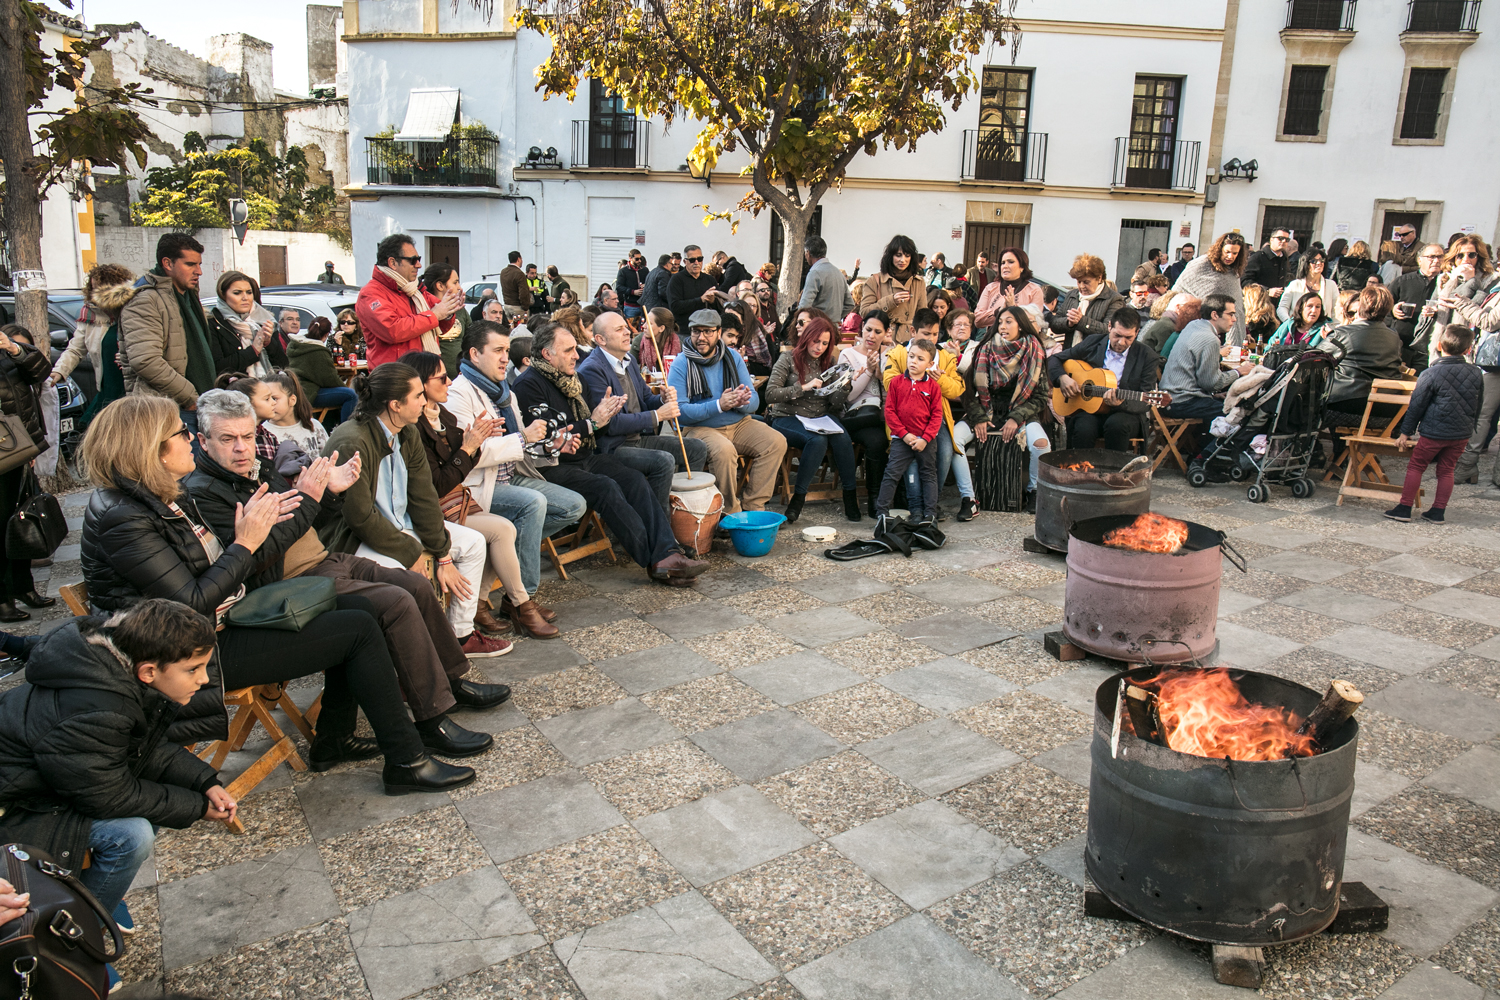 Zambomba in the Plaza - The outdoor squares of Jerez resonate to the music of a zambomba in December. IMAGE Pepe González Cabello